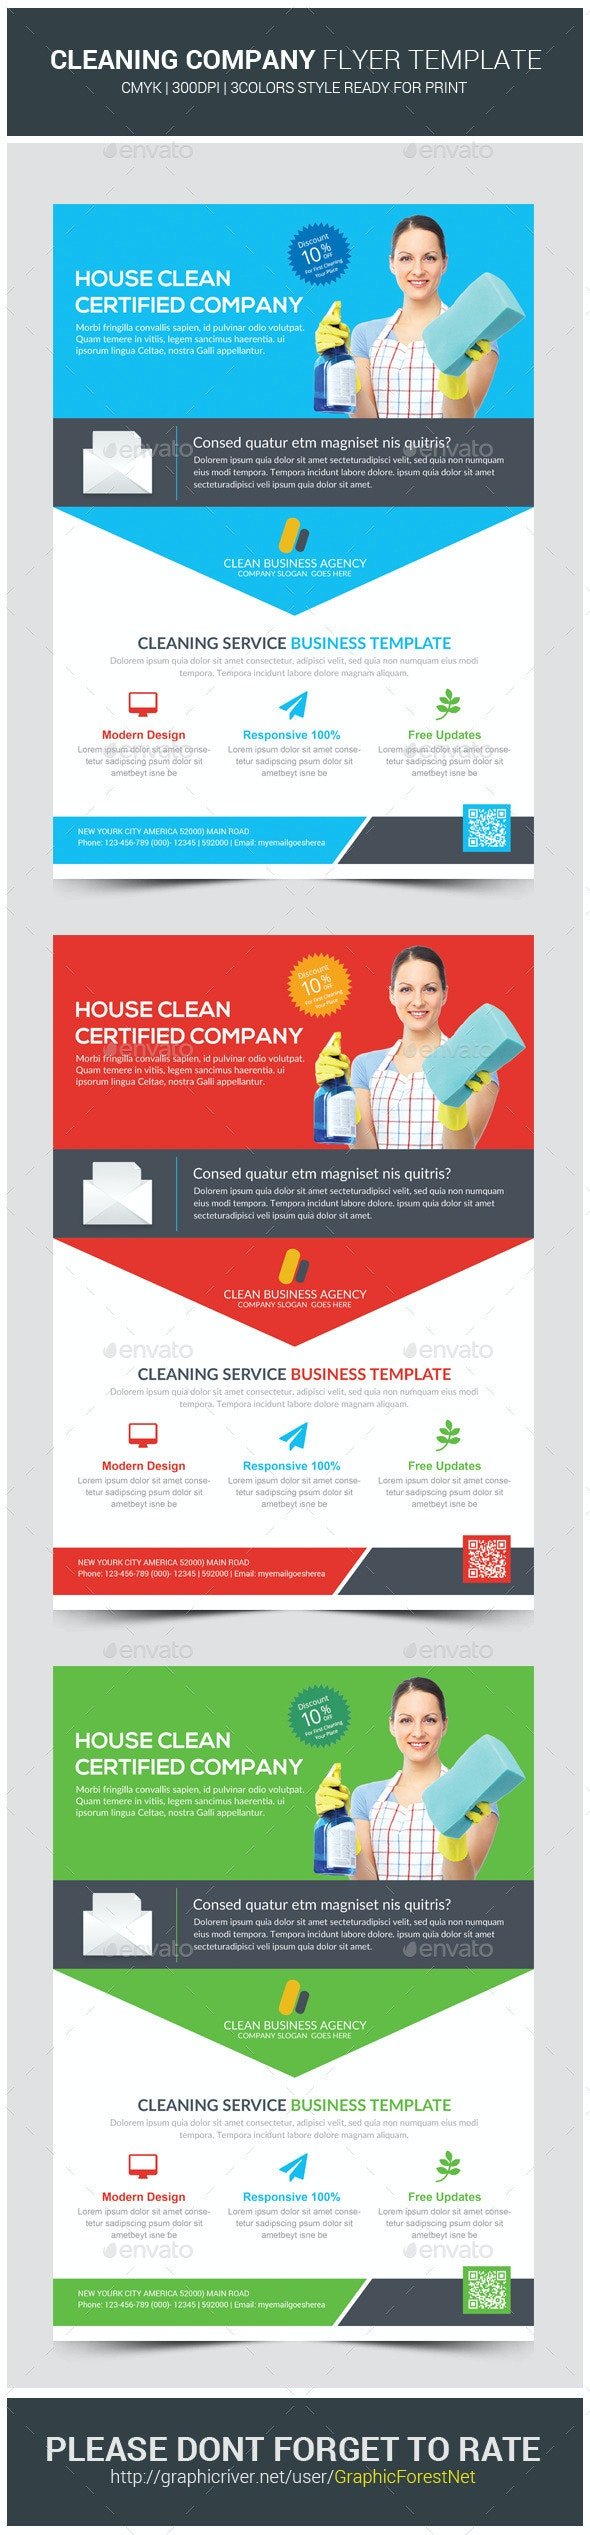 House Cleaning Services Flyer Template - Corporate Flyers